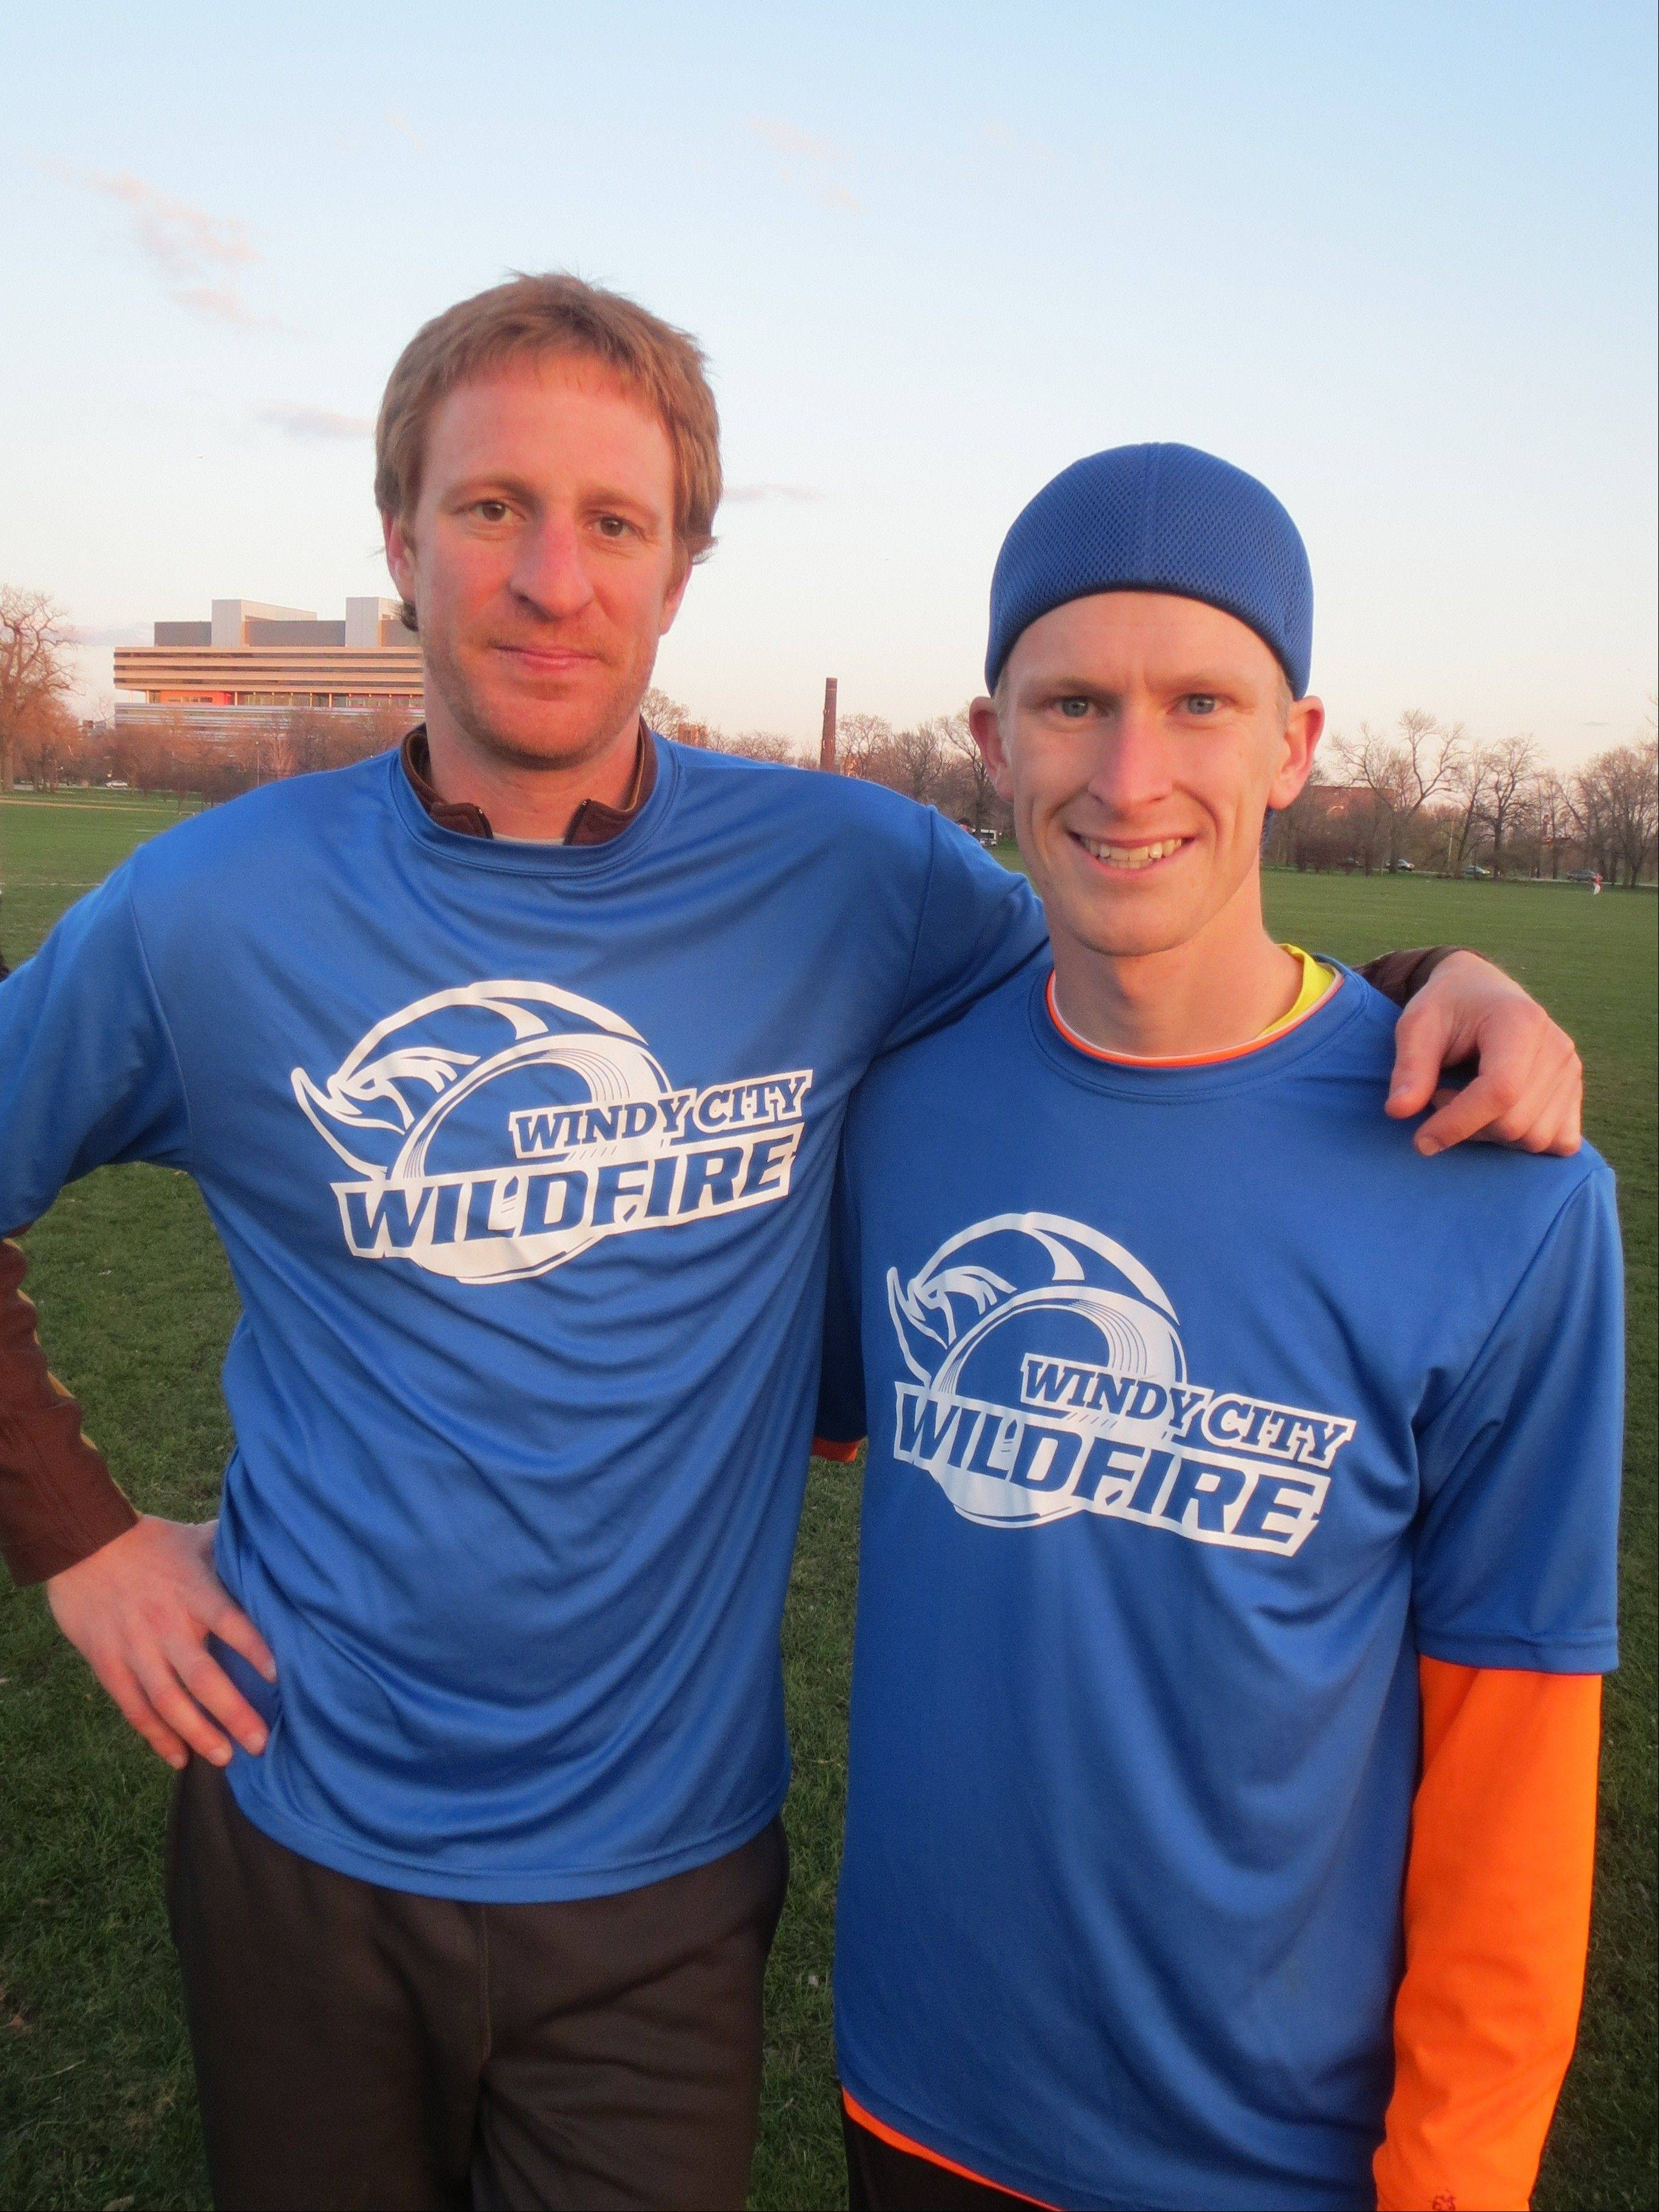 Teammates on Chicago's newest professional sports team, Brett Kolinek, left, of Naperville, and Jimmy Robin of Hawthorn Woods, take a break during a high-energy practice of catching, throwing and sprinting to prepare for Sunday's American Ultimate Disc League game.